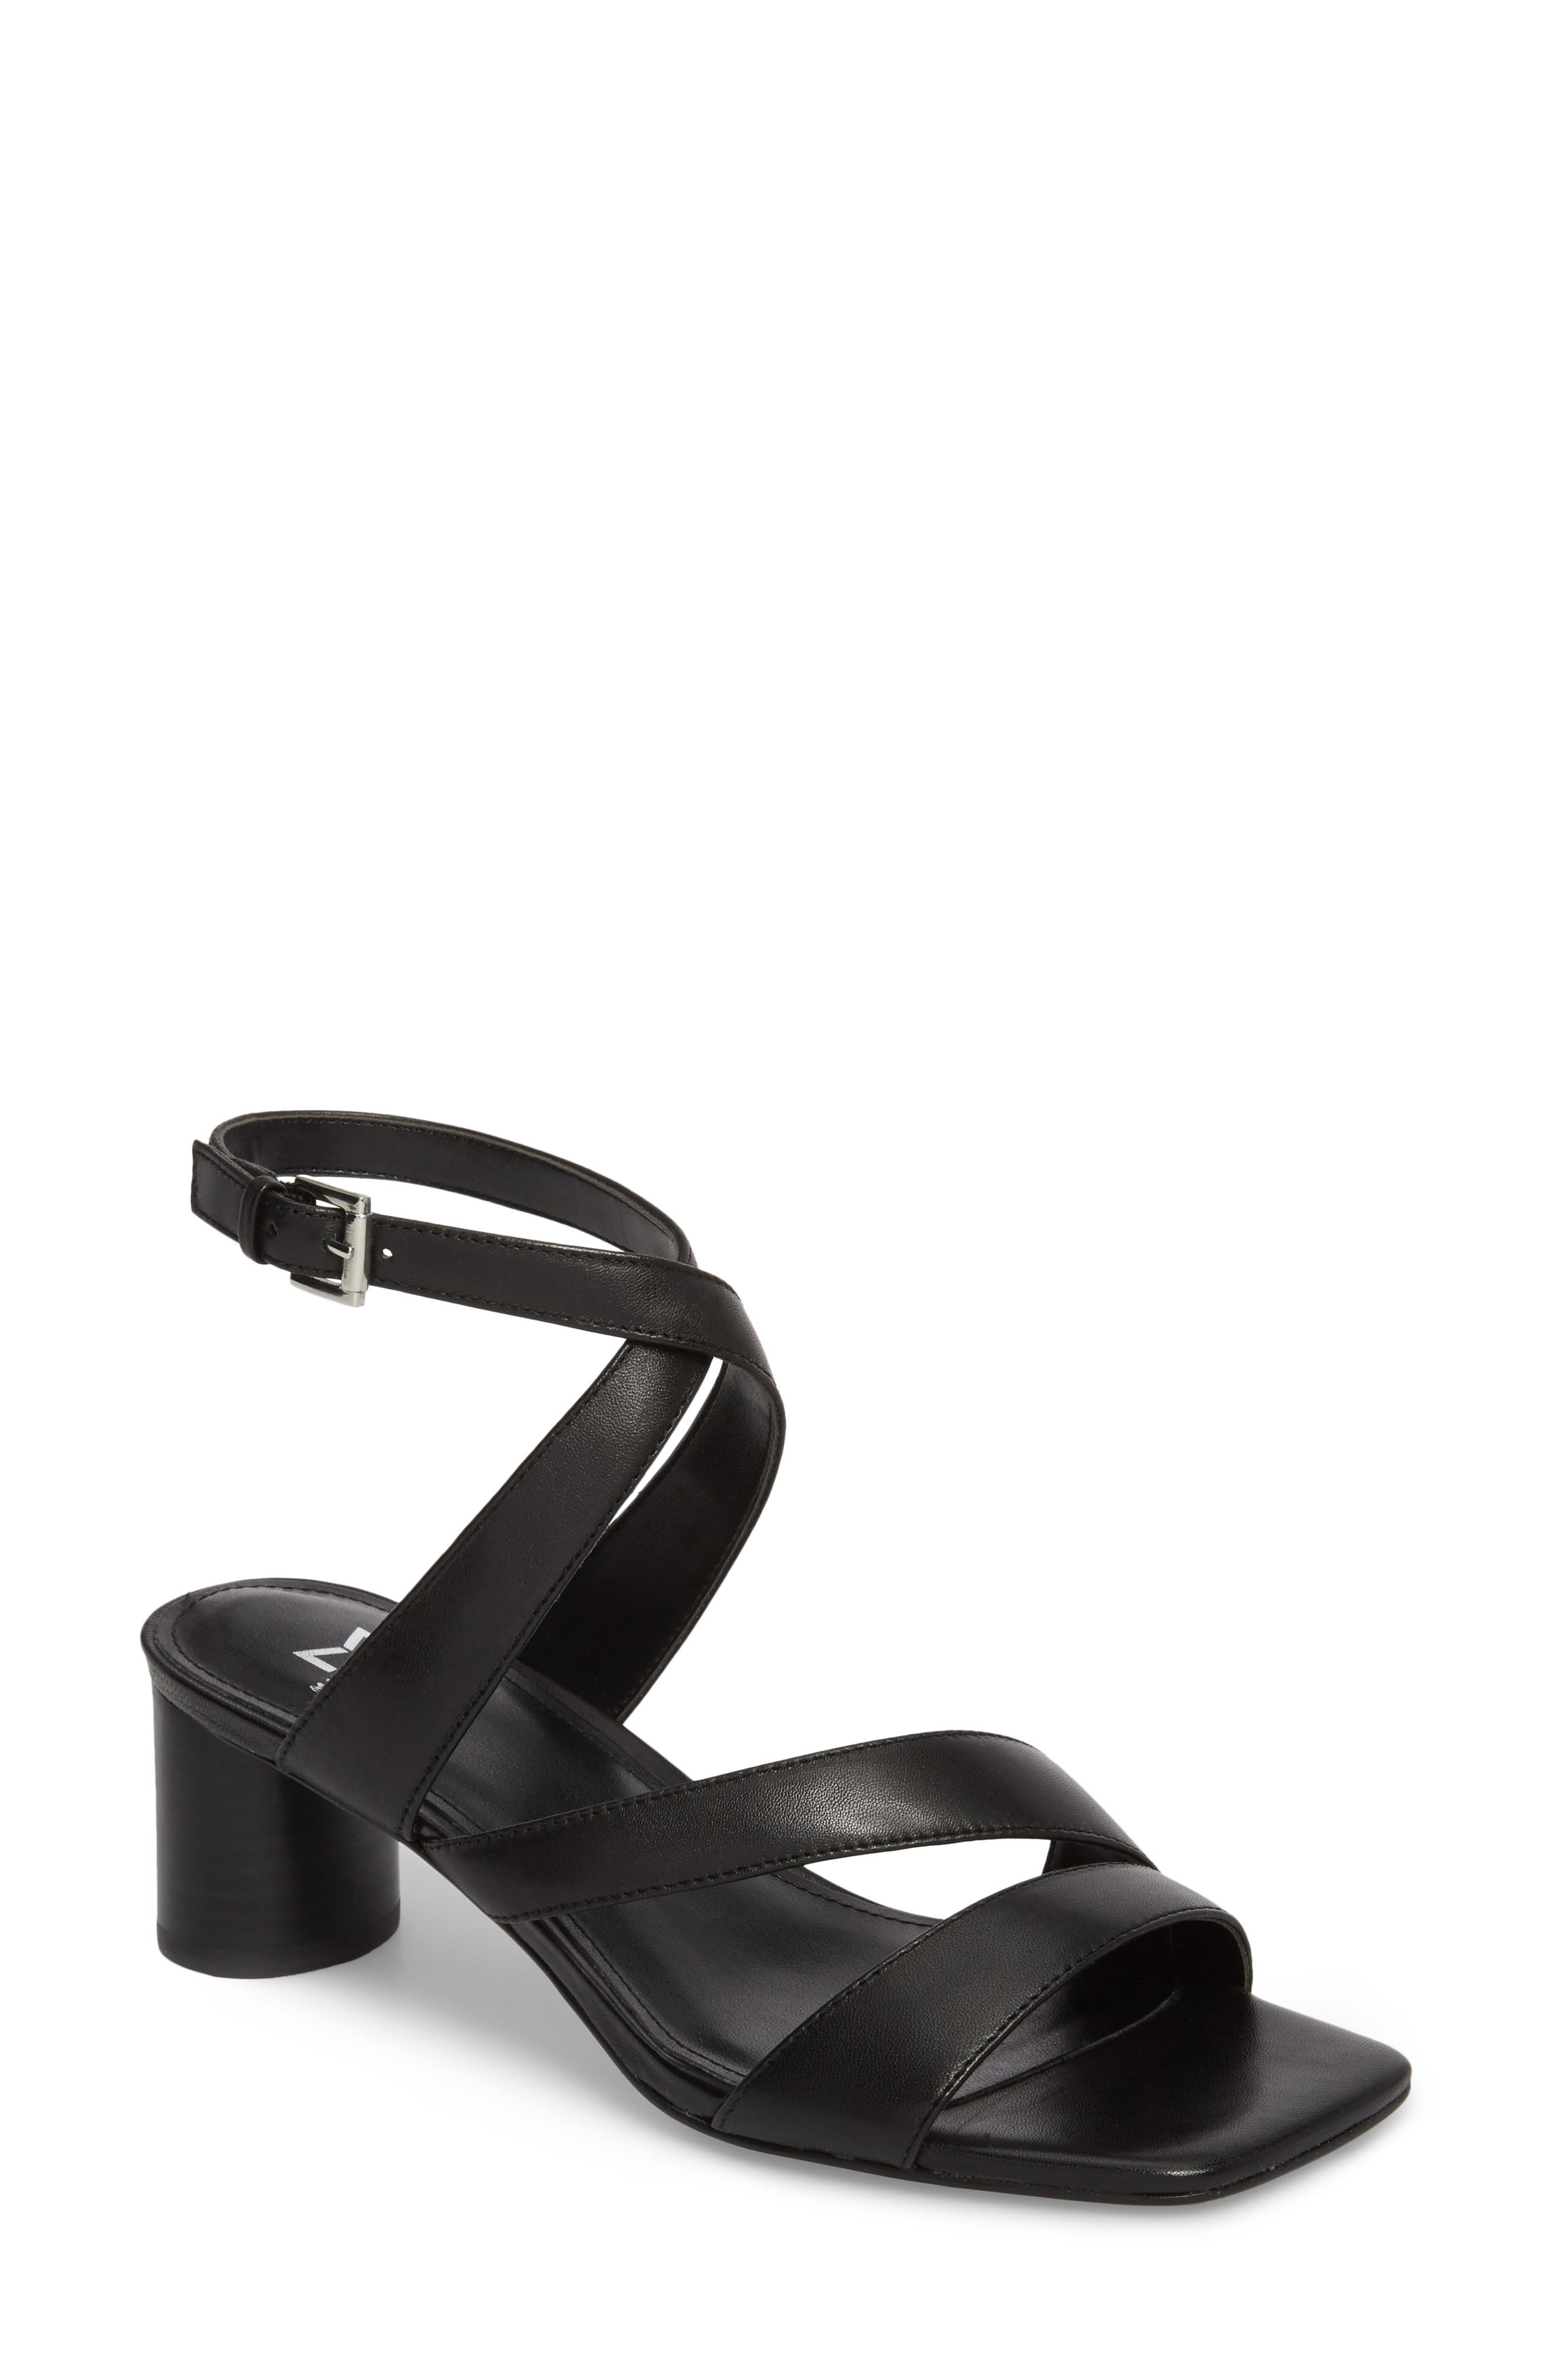 Marc Fischer LTD Idana Strappy Sandal,                         Main,                         color, 001